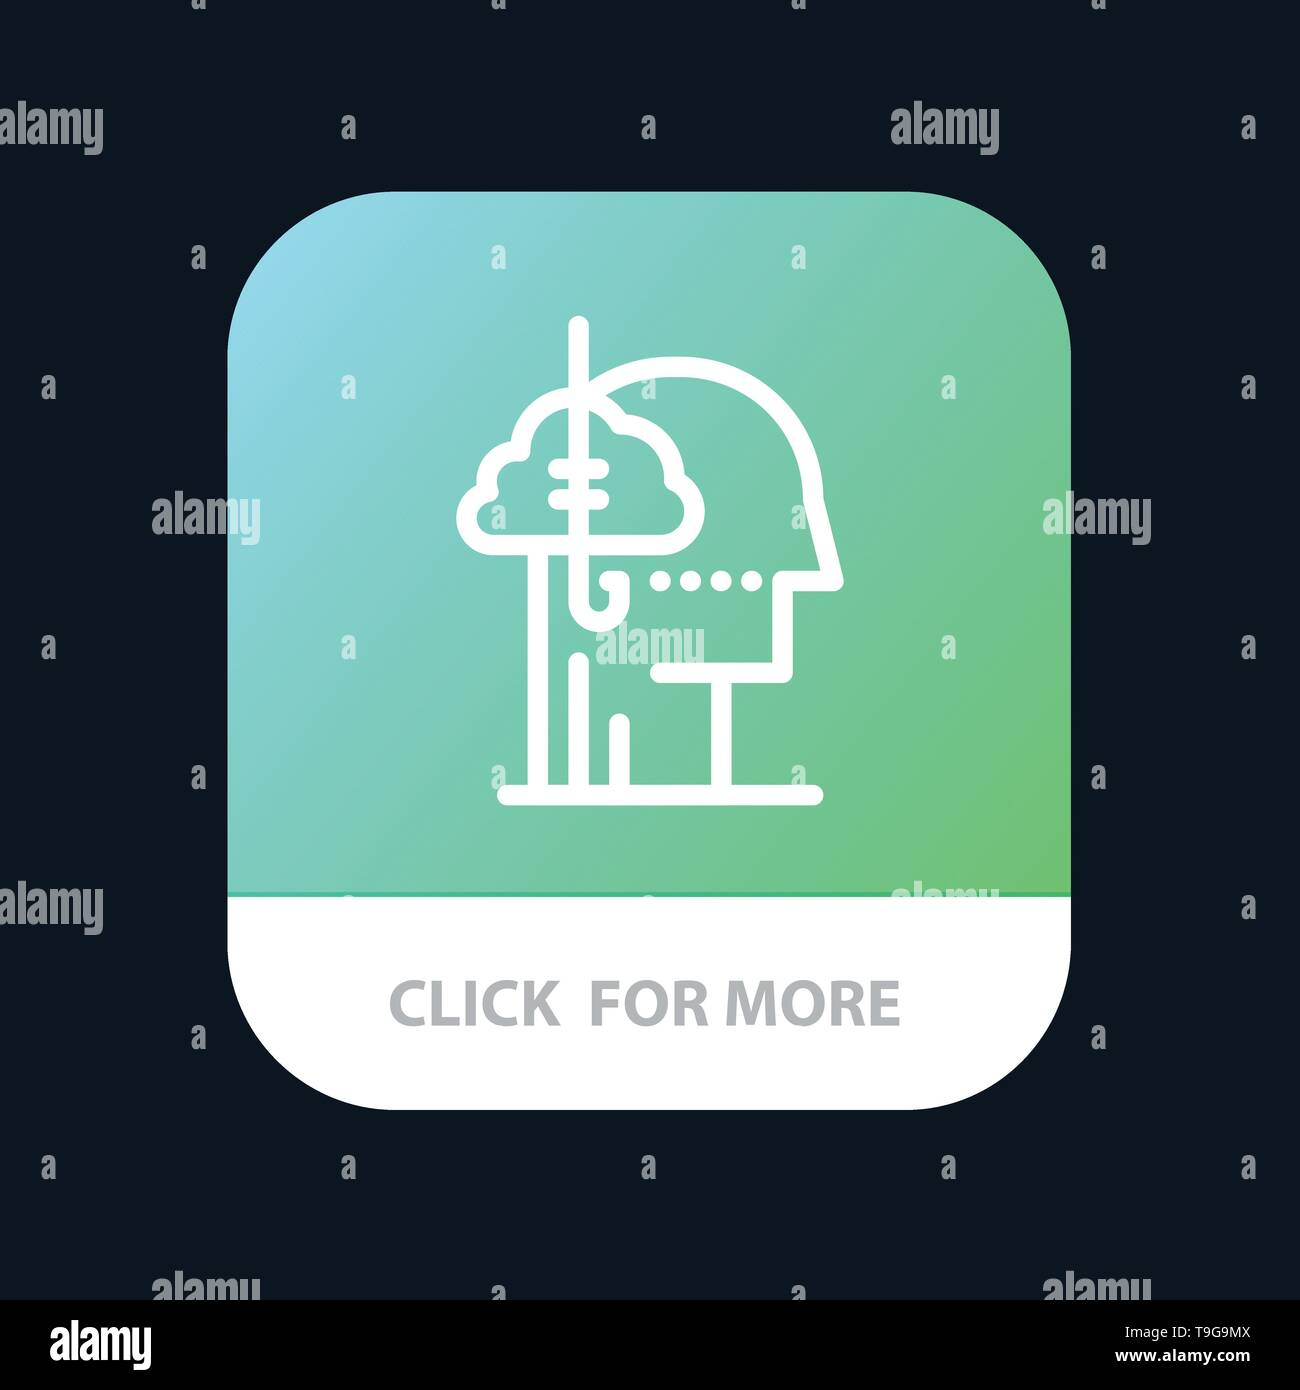 Borrowing Ideas, Addiction, Catch, Habit, Human Mobile App Button. Android and IOS Line Version - Stock Image